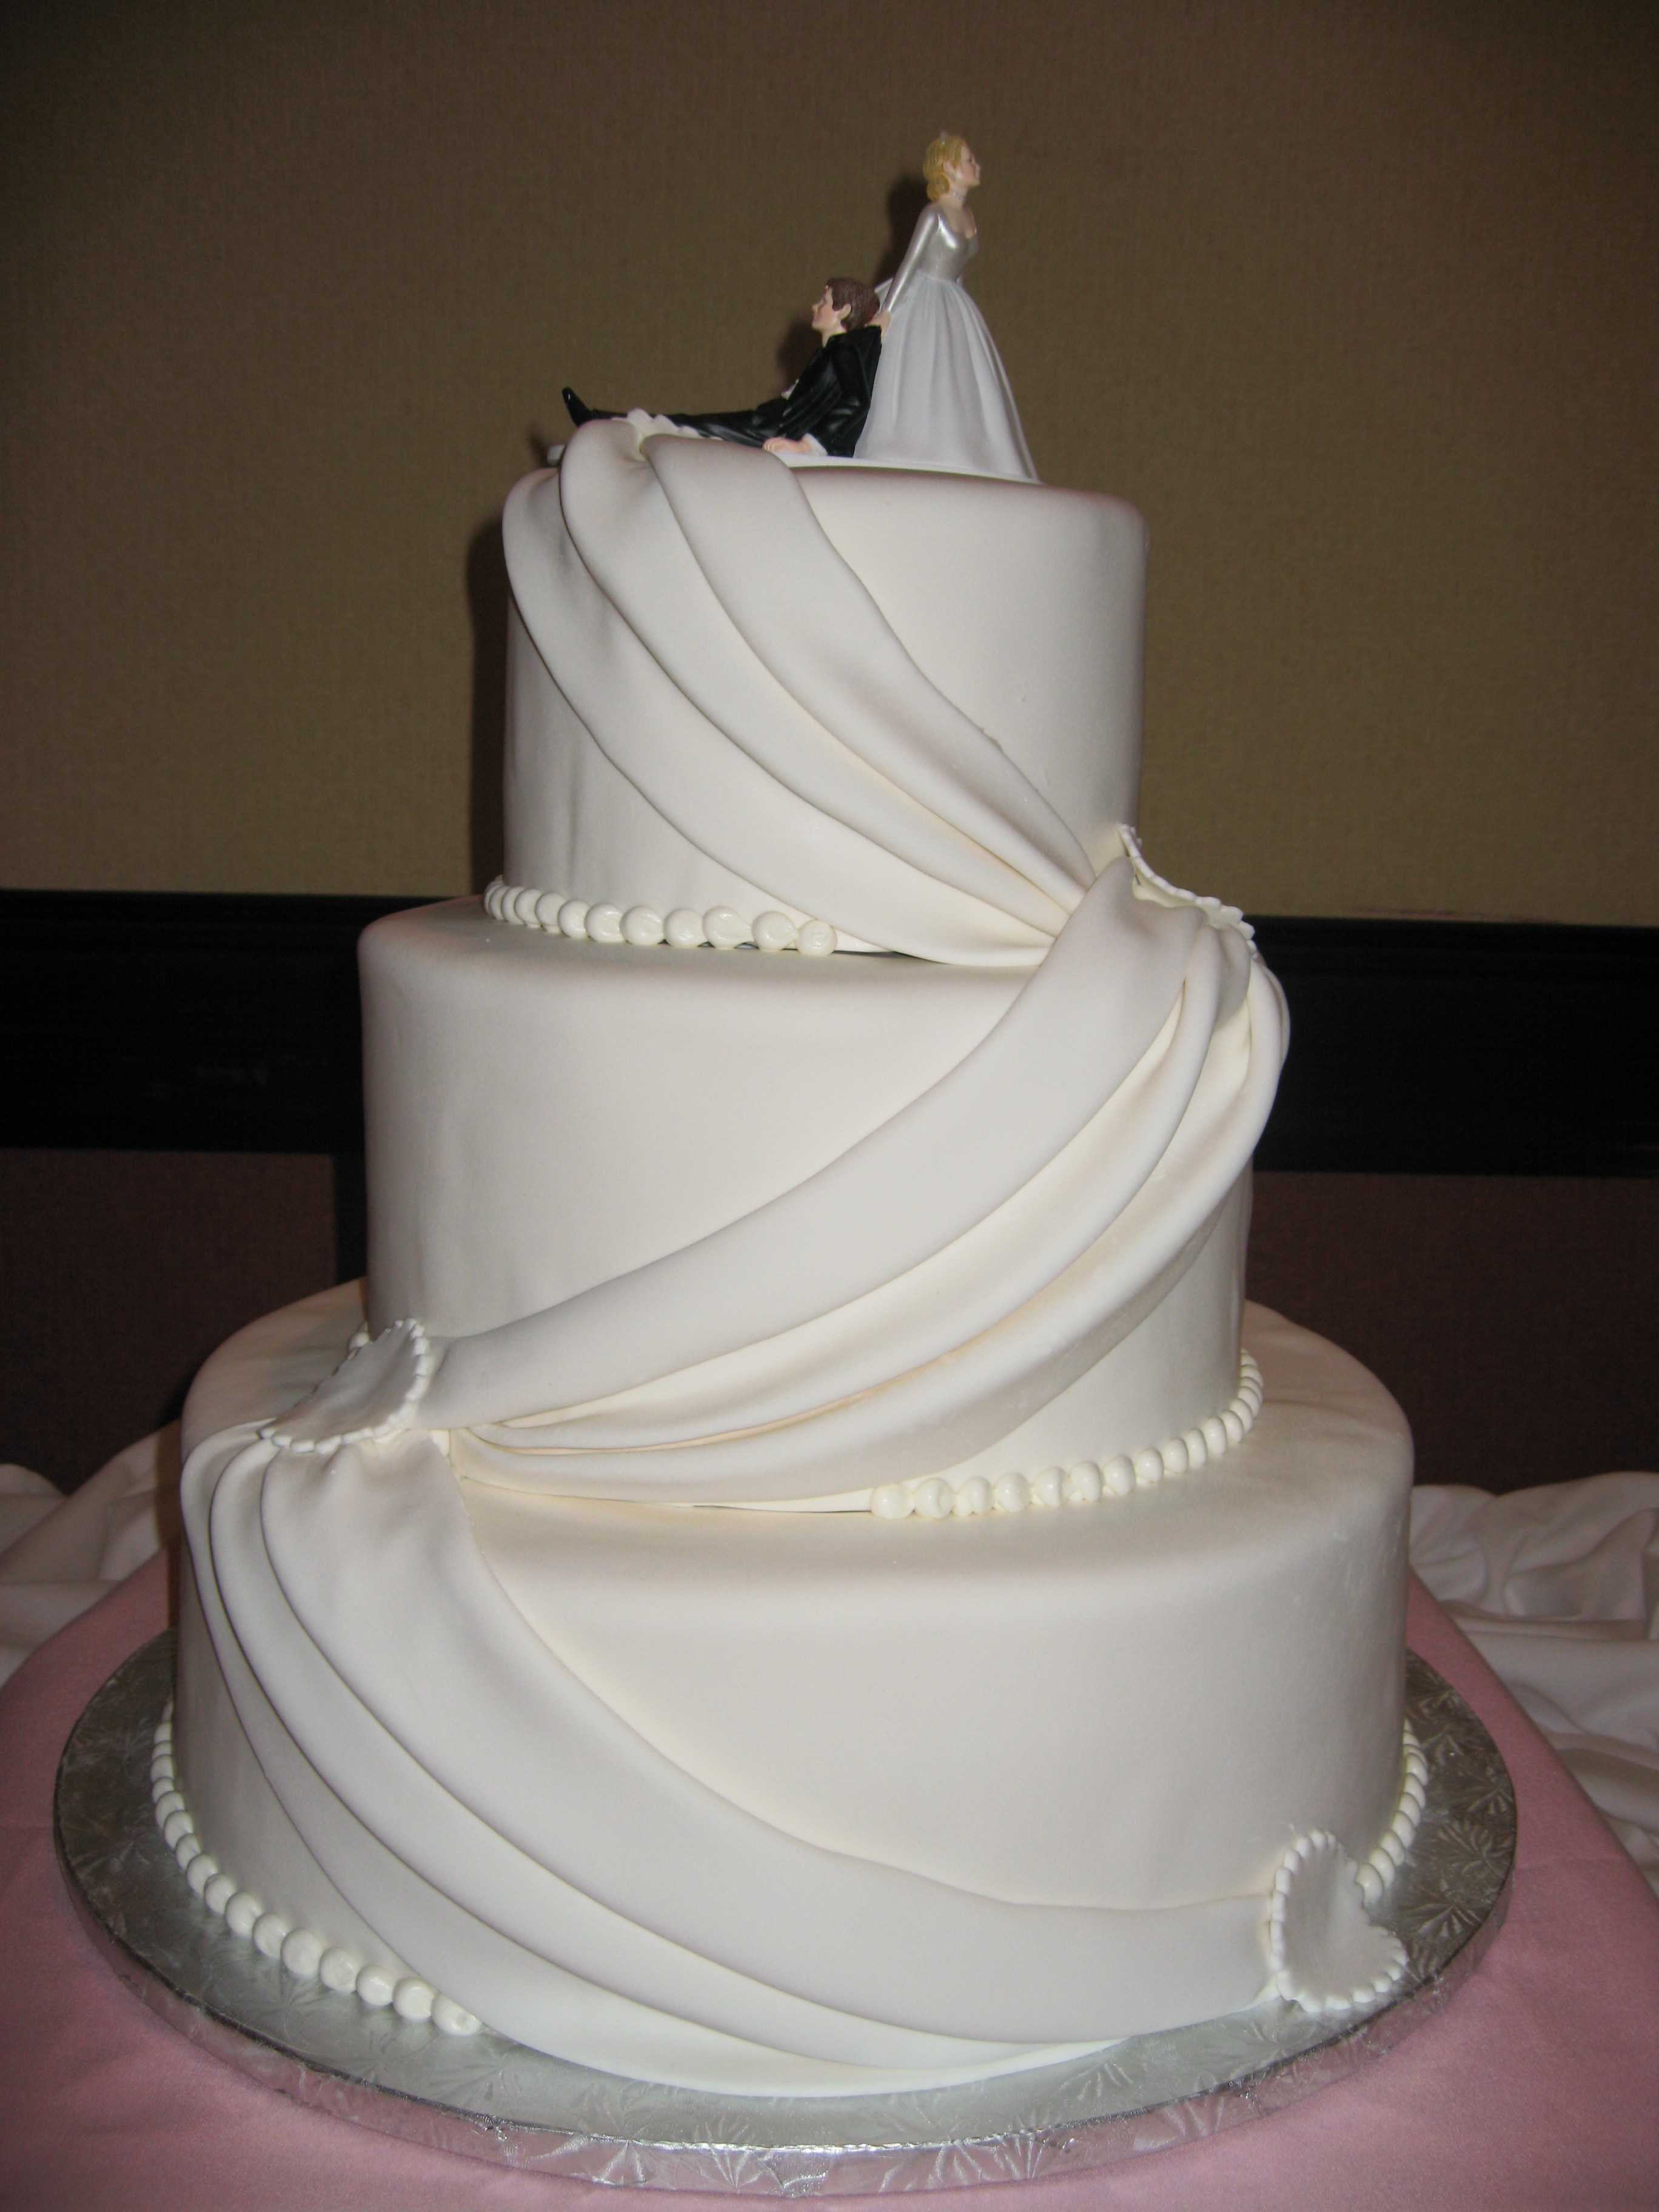 Simple Wedding Cakes Design  30 ULTIMATE WEDDING CAKES TO STEAL THE SHOW